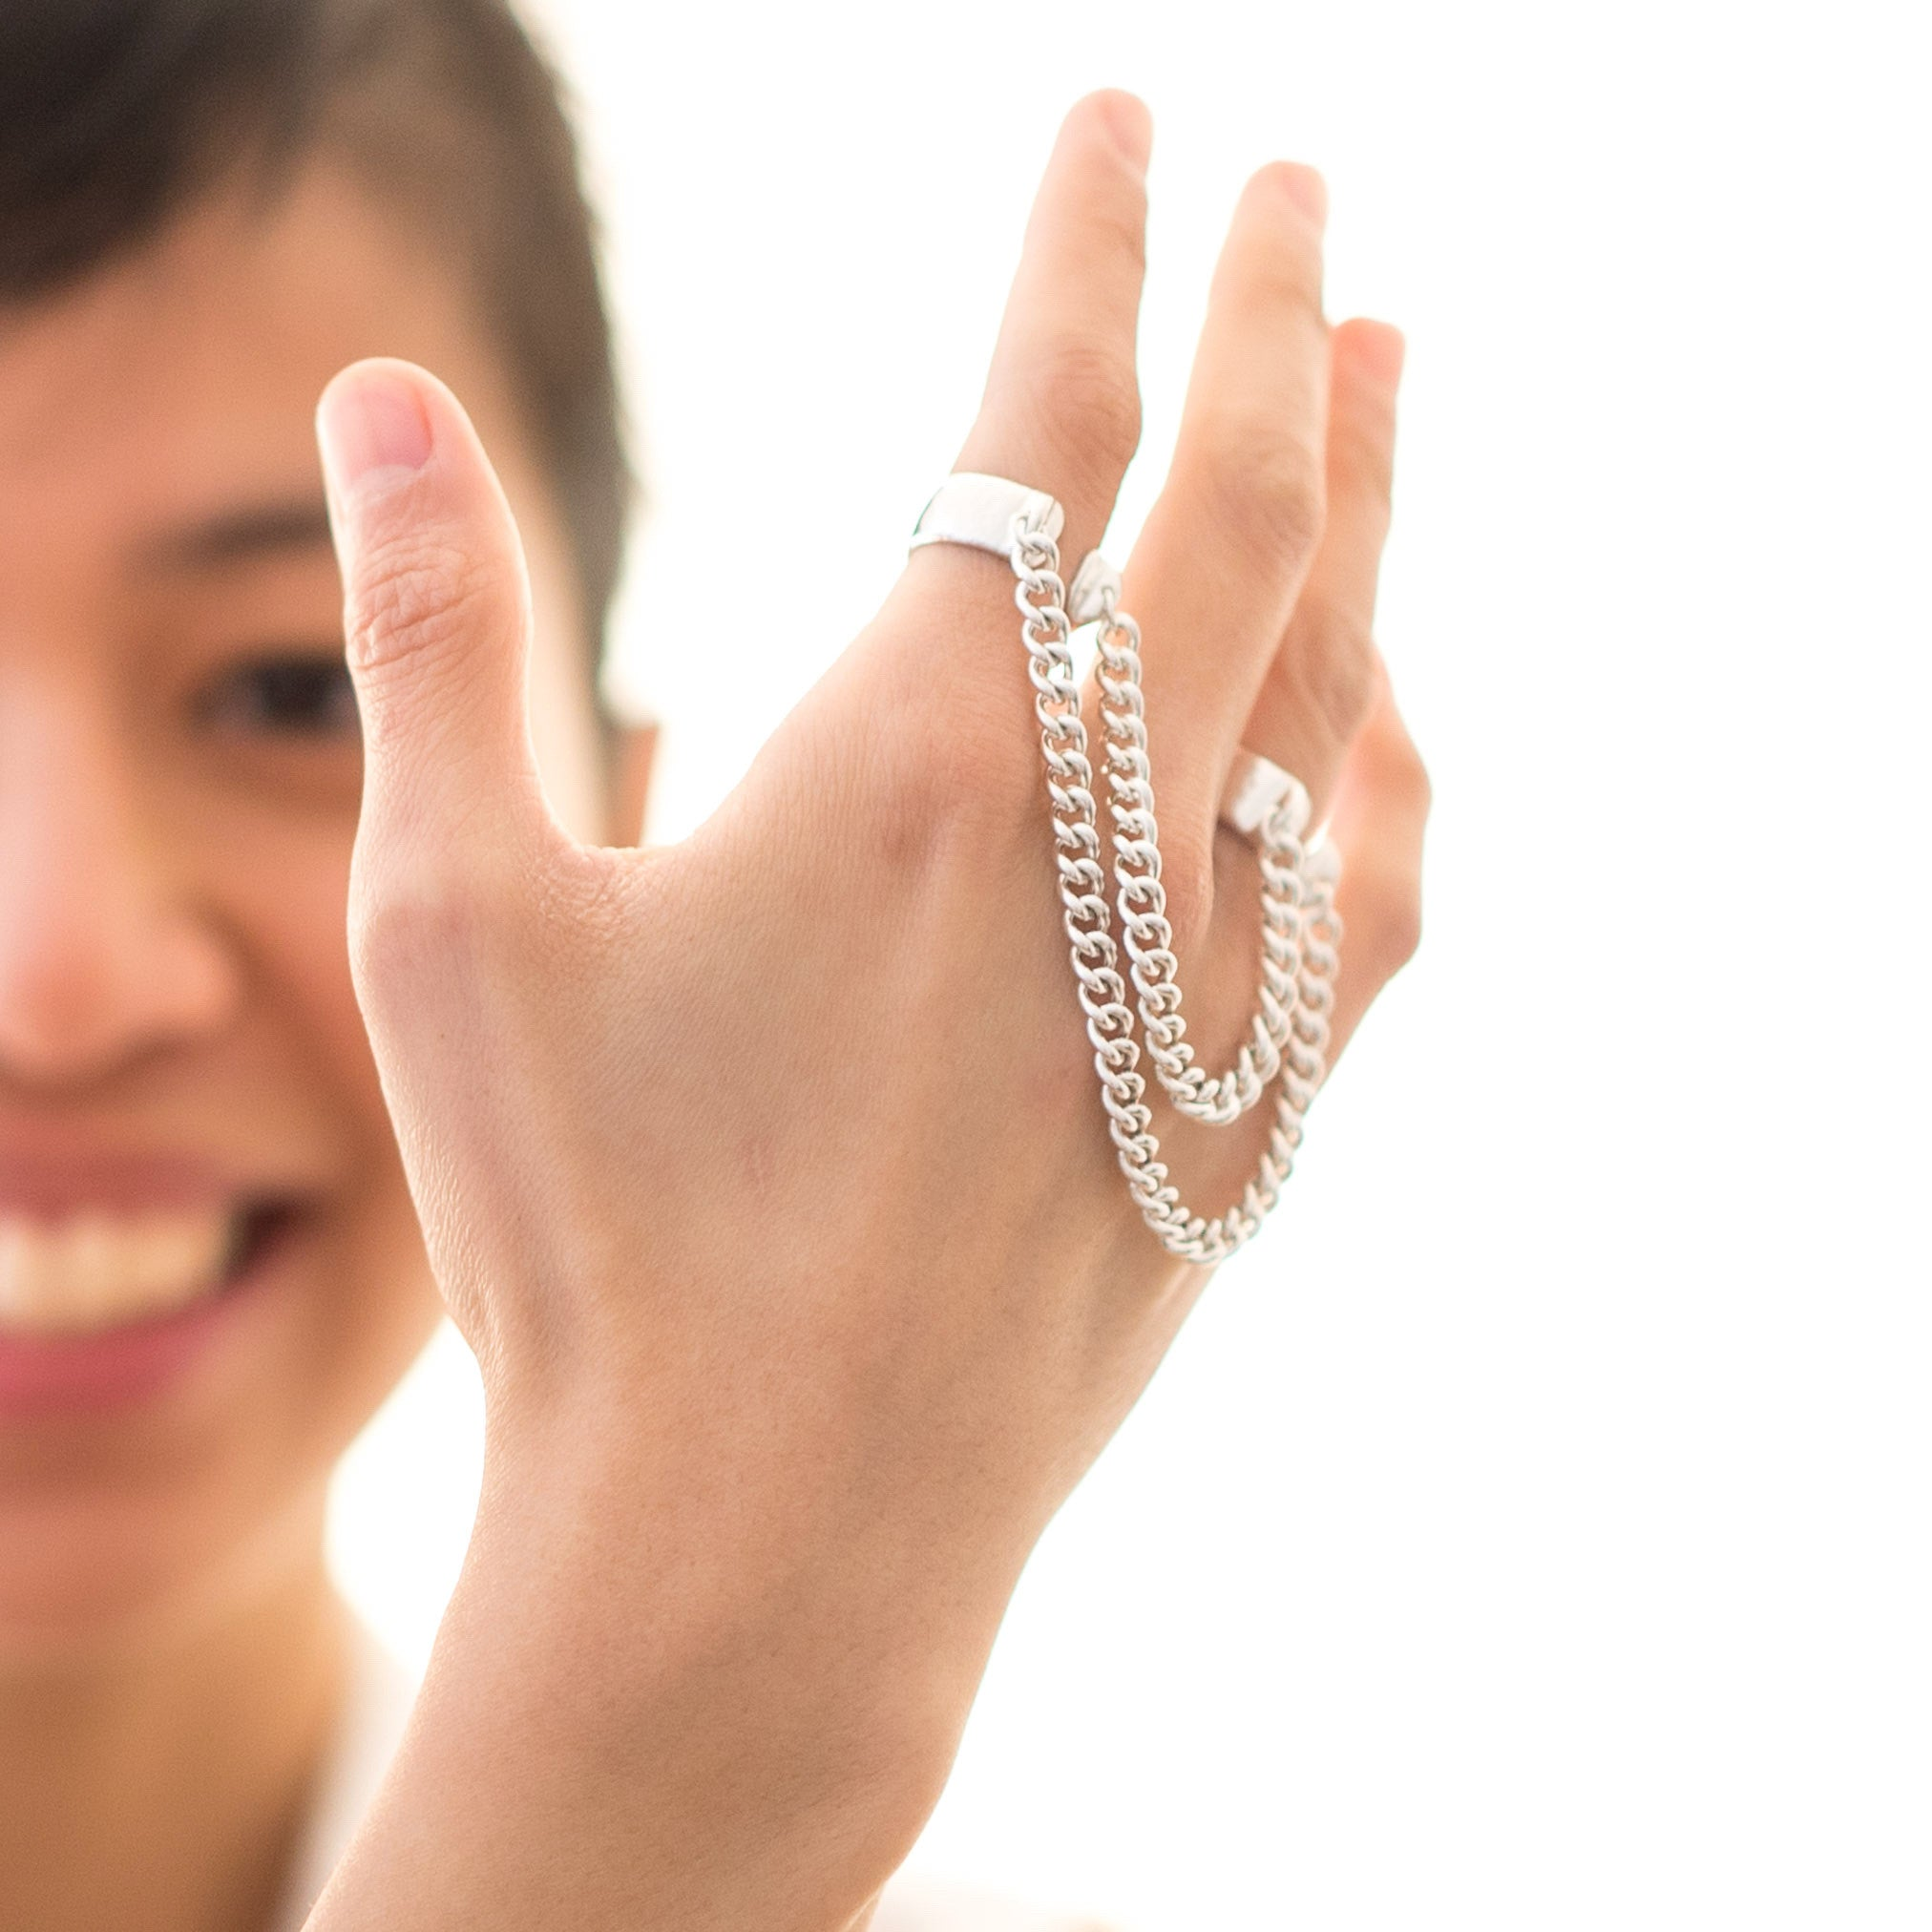 Kristine Cabanban Jewelry Double Chain Rings Silver